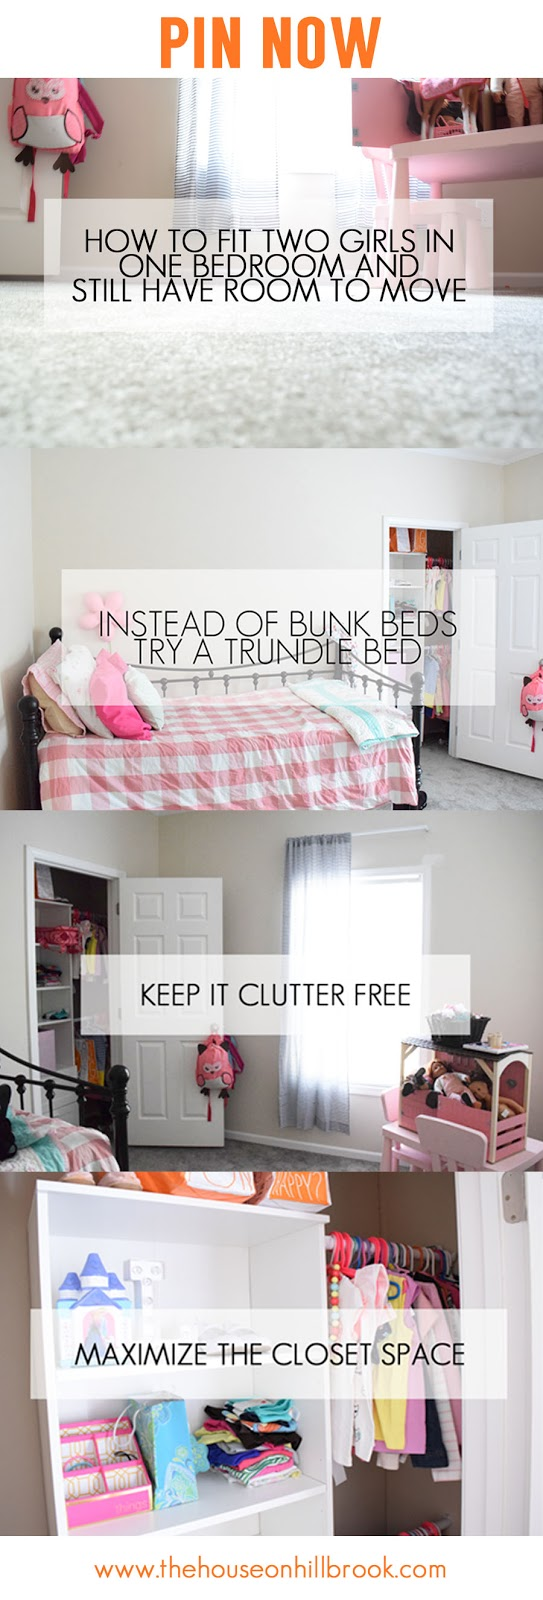 bedrooms for two girls. How To Fit Two Girls In One Bedroom And Still Have Room Move - The House On Hillbrook Bedrooms For I